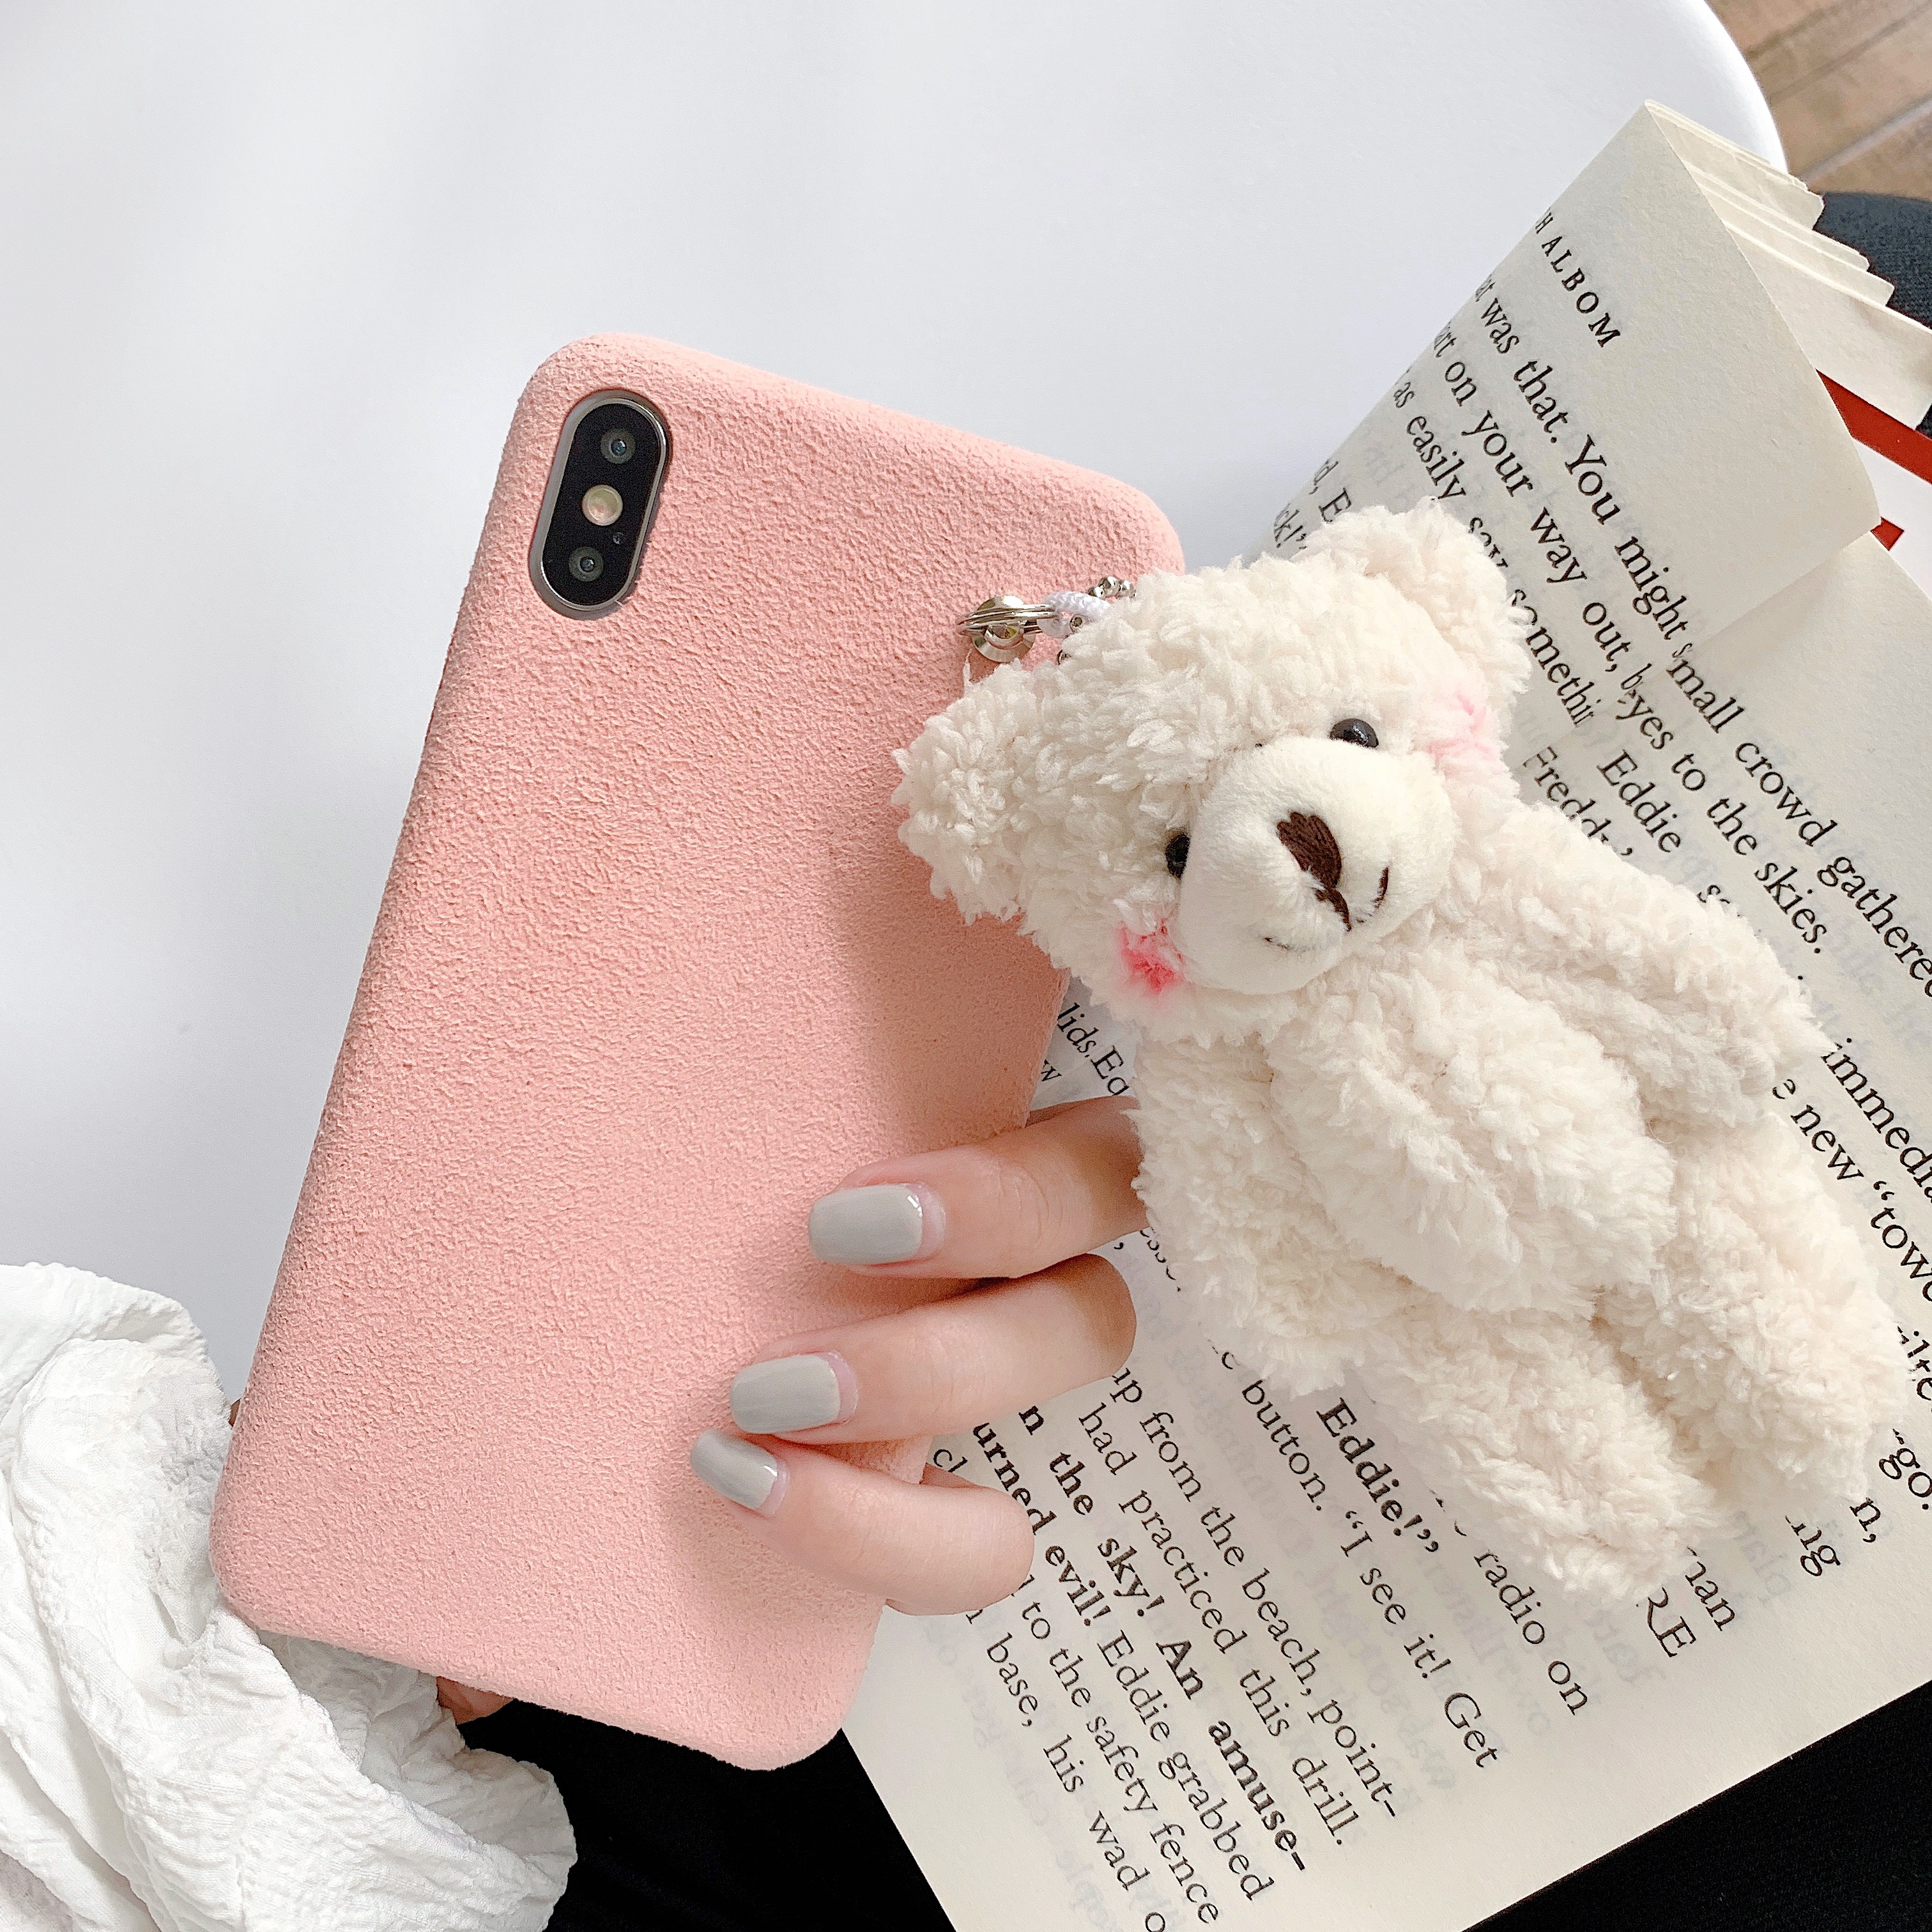 Winter Series Macaron Blush Bear Short Fluff Case for iPhone 11 Pro Max XS Max XR X Phone 6 6S 7 8 Plus Furry Warm CASE Cover Khaki-for iPhone XR